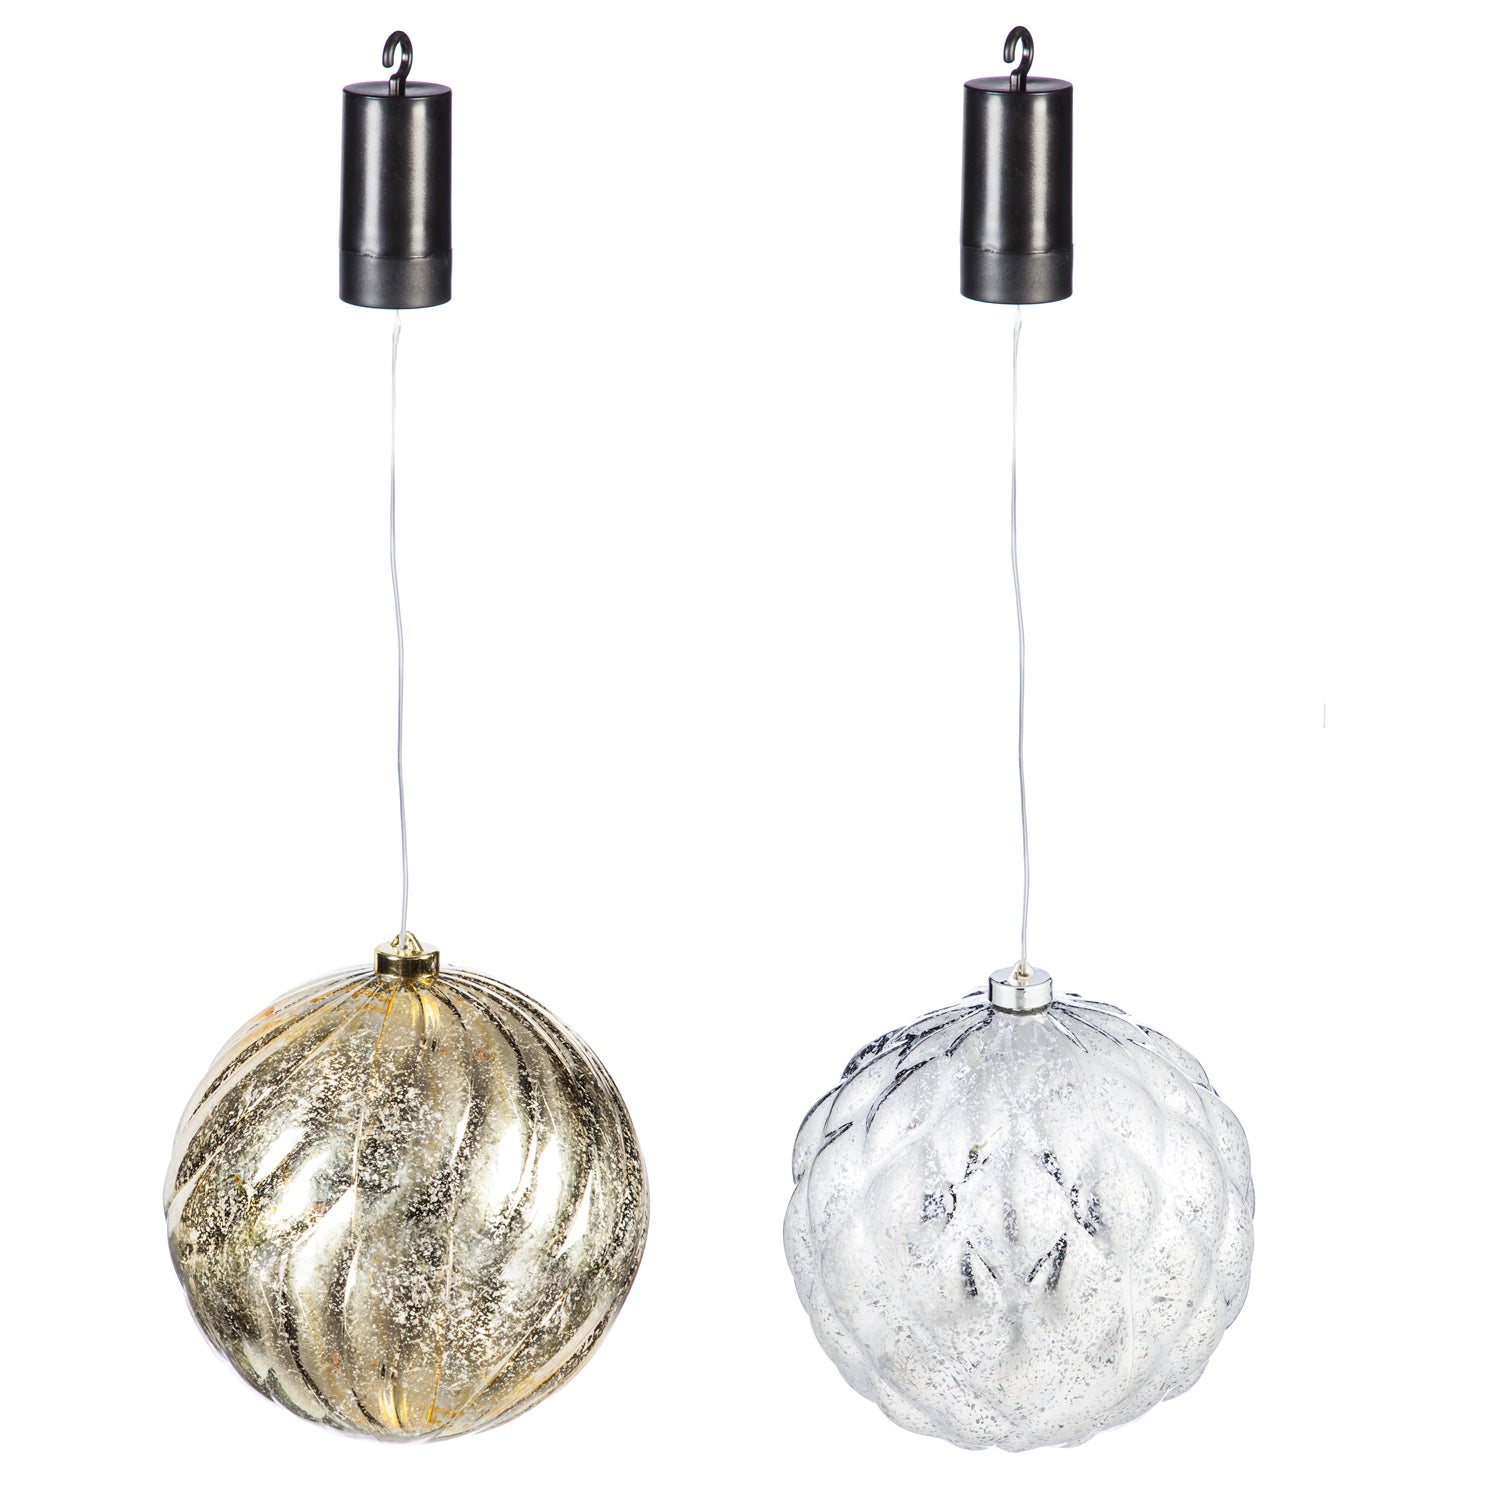 "Gold and Silver 8"" Shatterproof Outdoor-Safe Battery Operated LED Round Acrylic Ornaments, Set of 2"